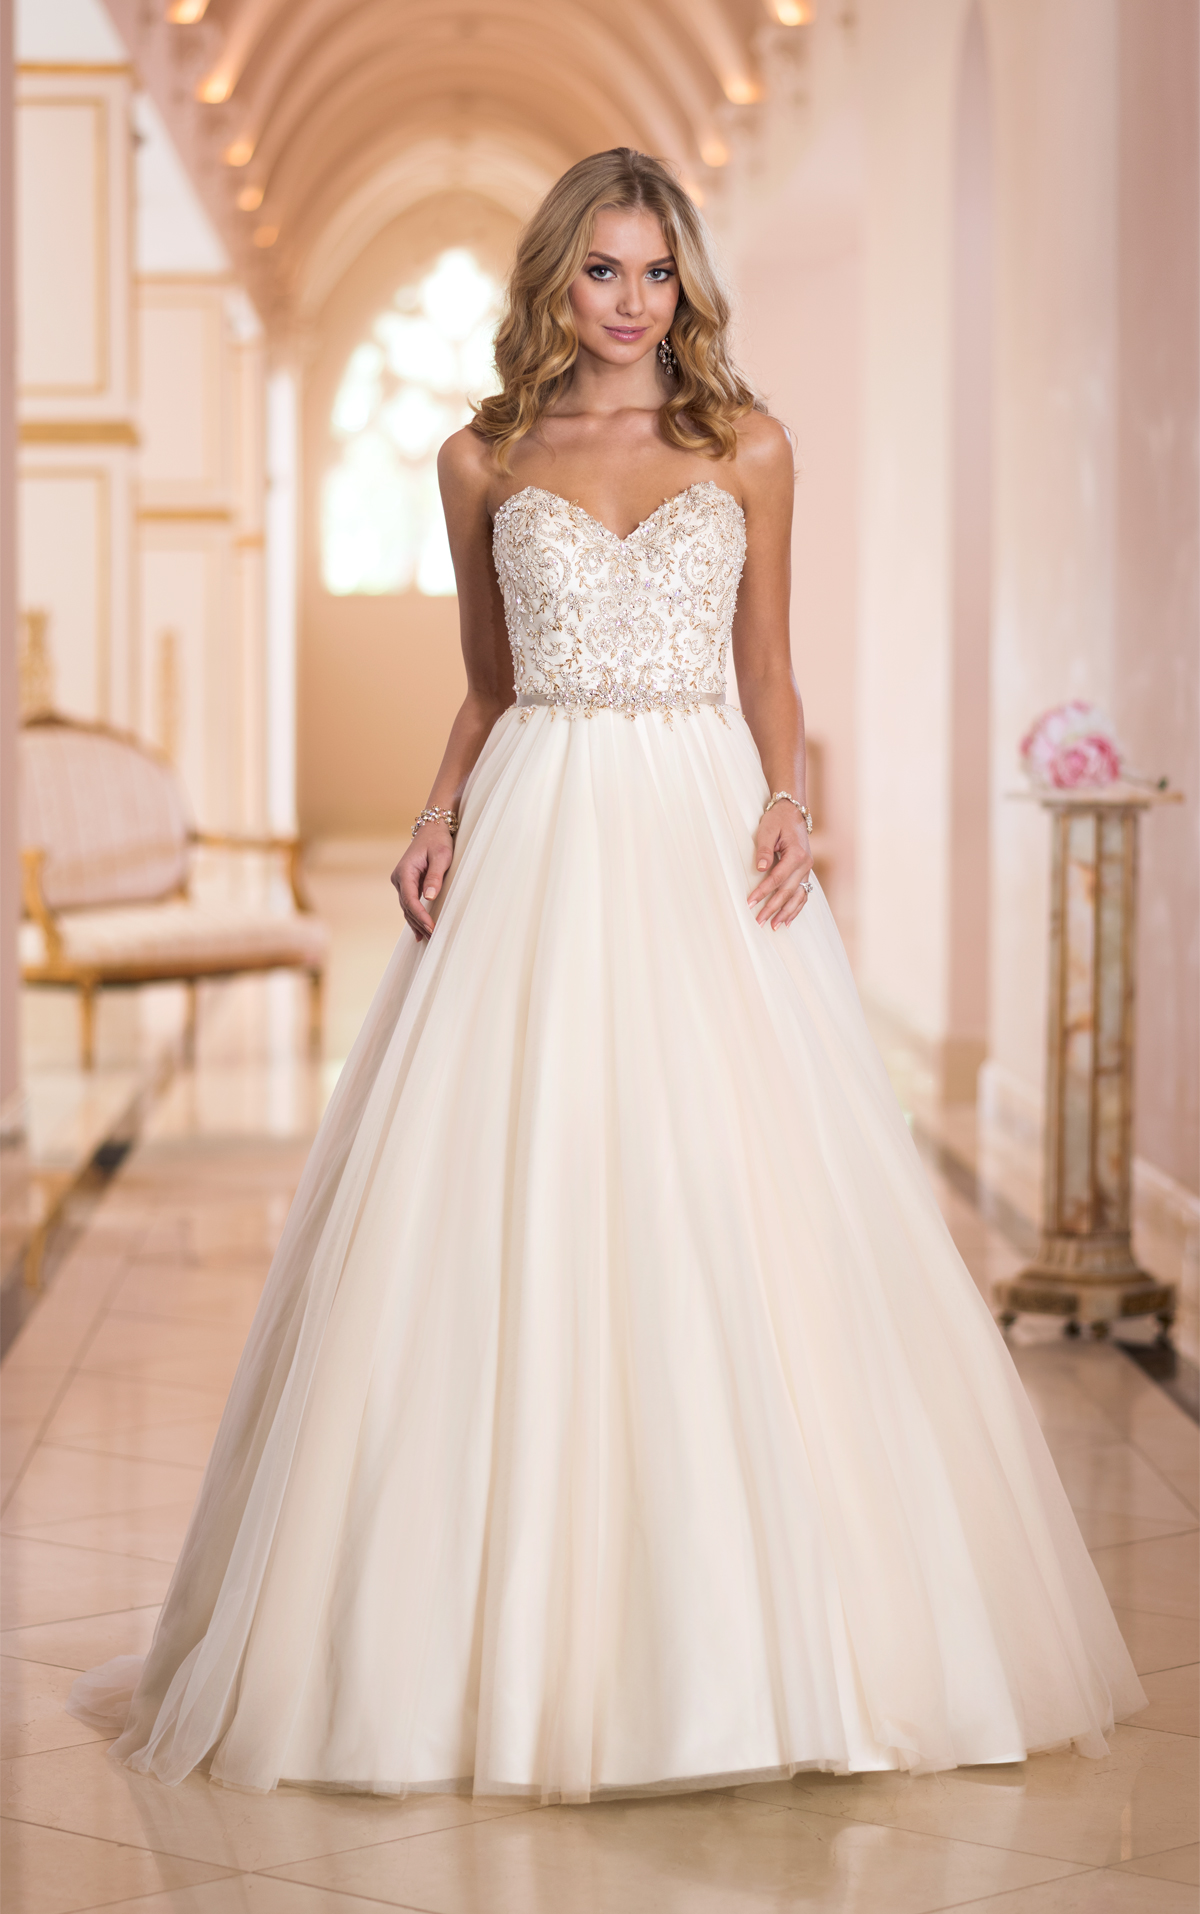 stella-york-wedding-dresses-2014-4-01162014